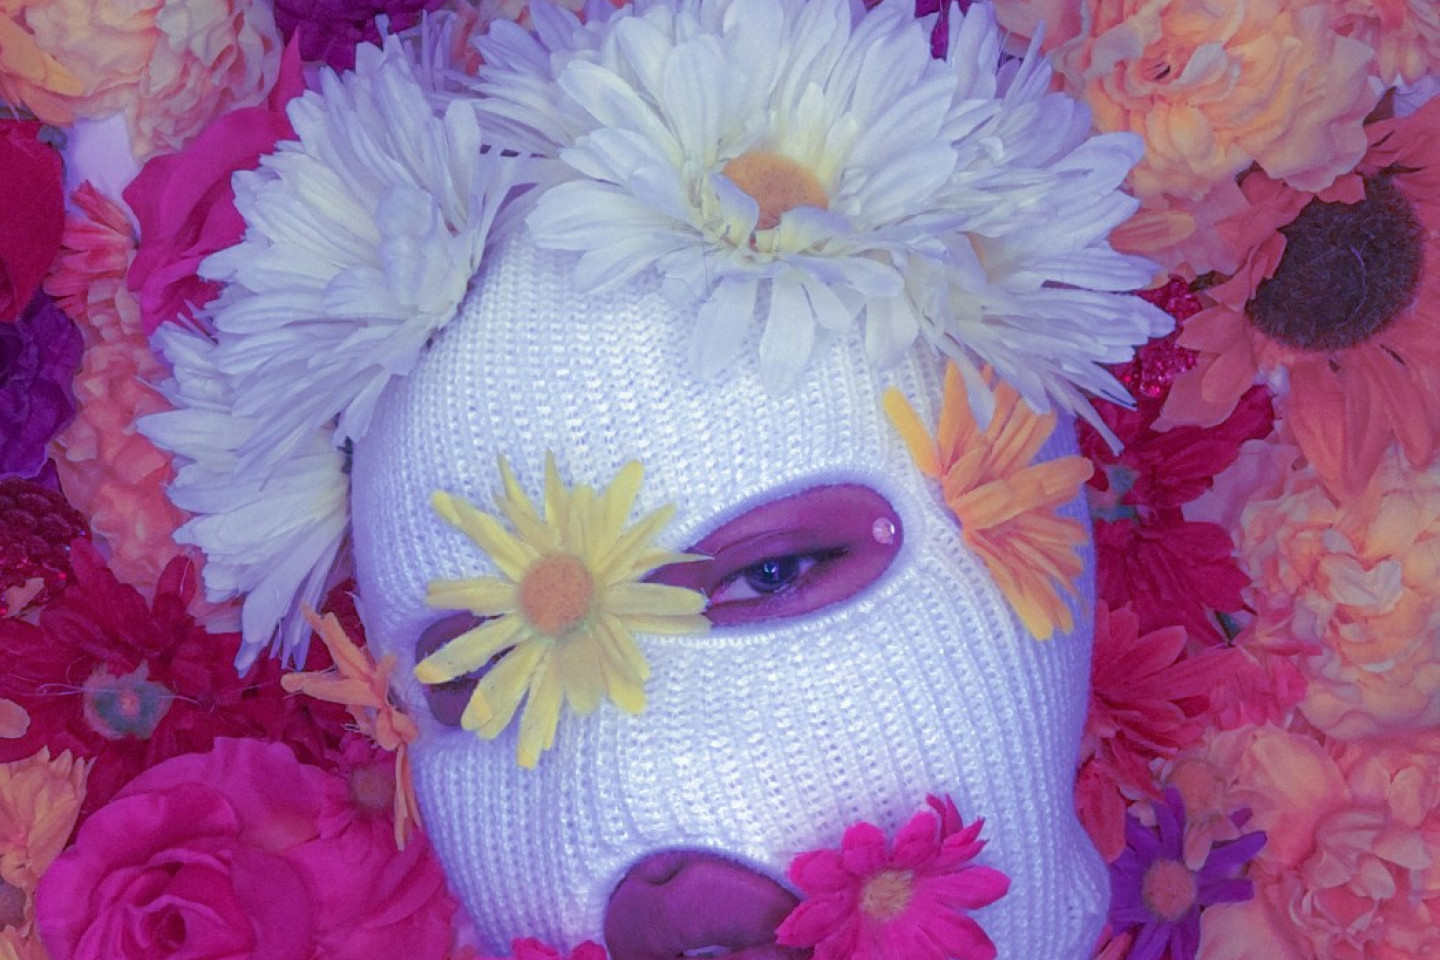 A woman wearing a face mask with flowers on the mask and surrounding her.